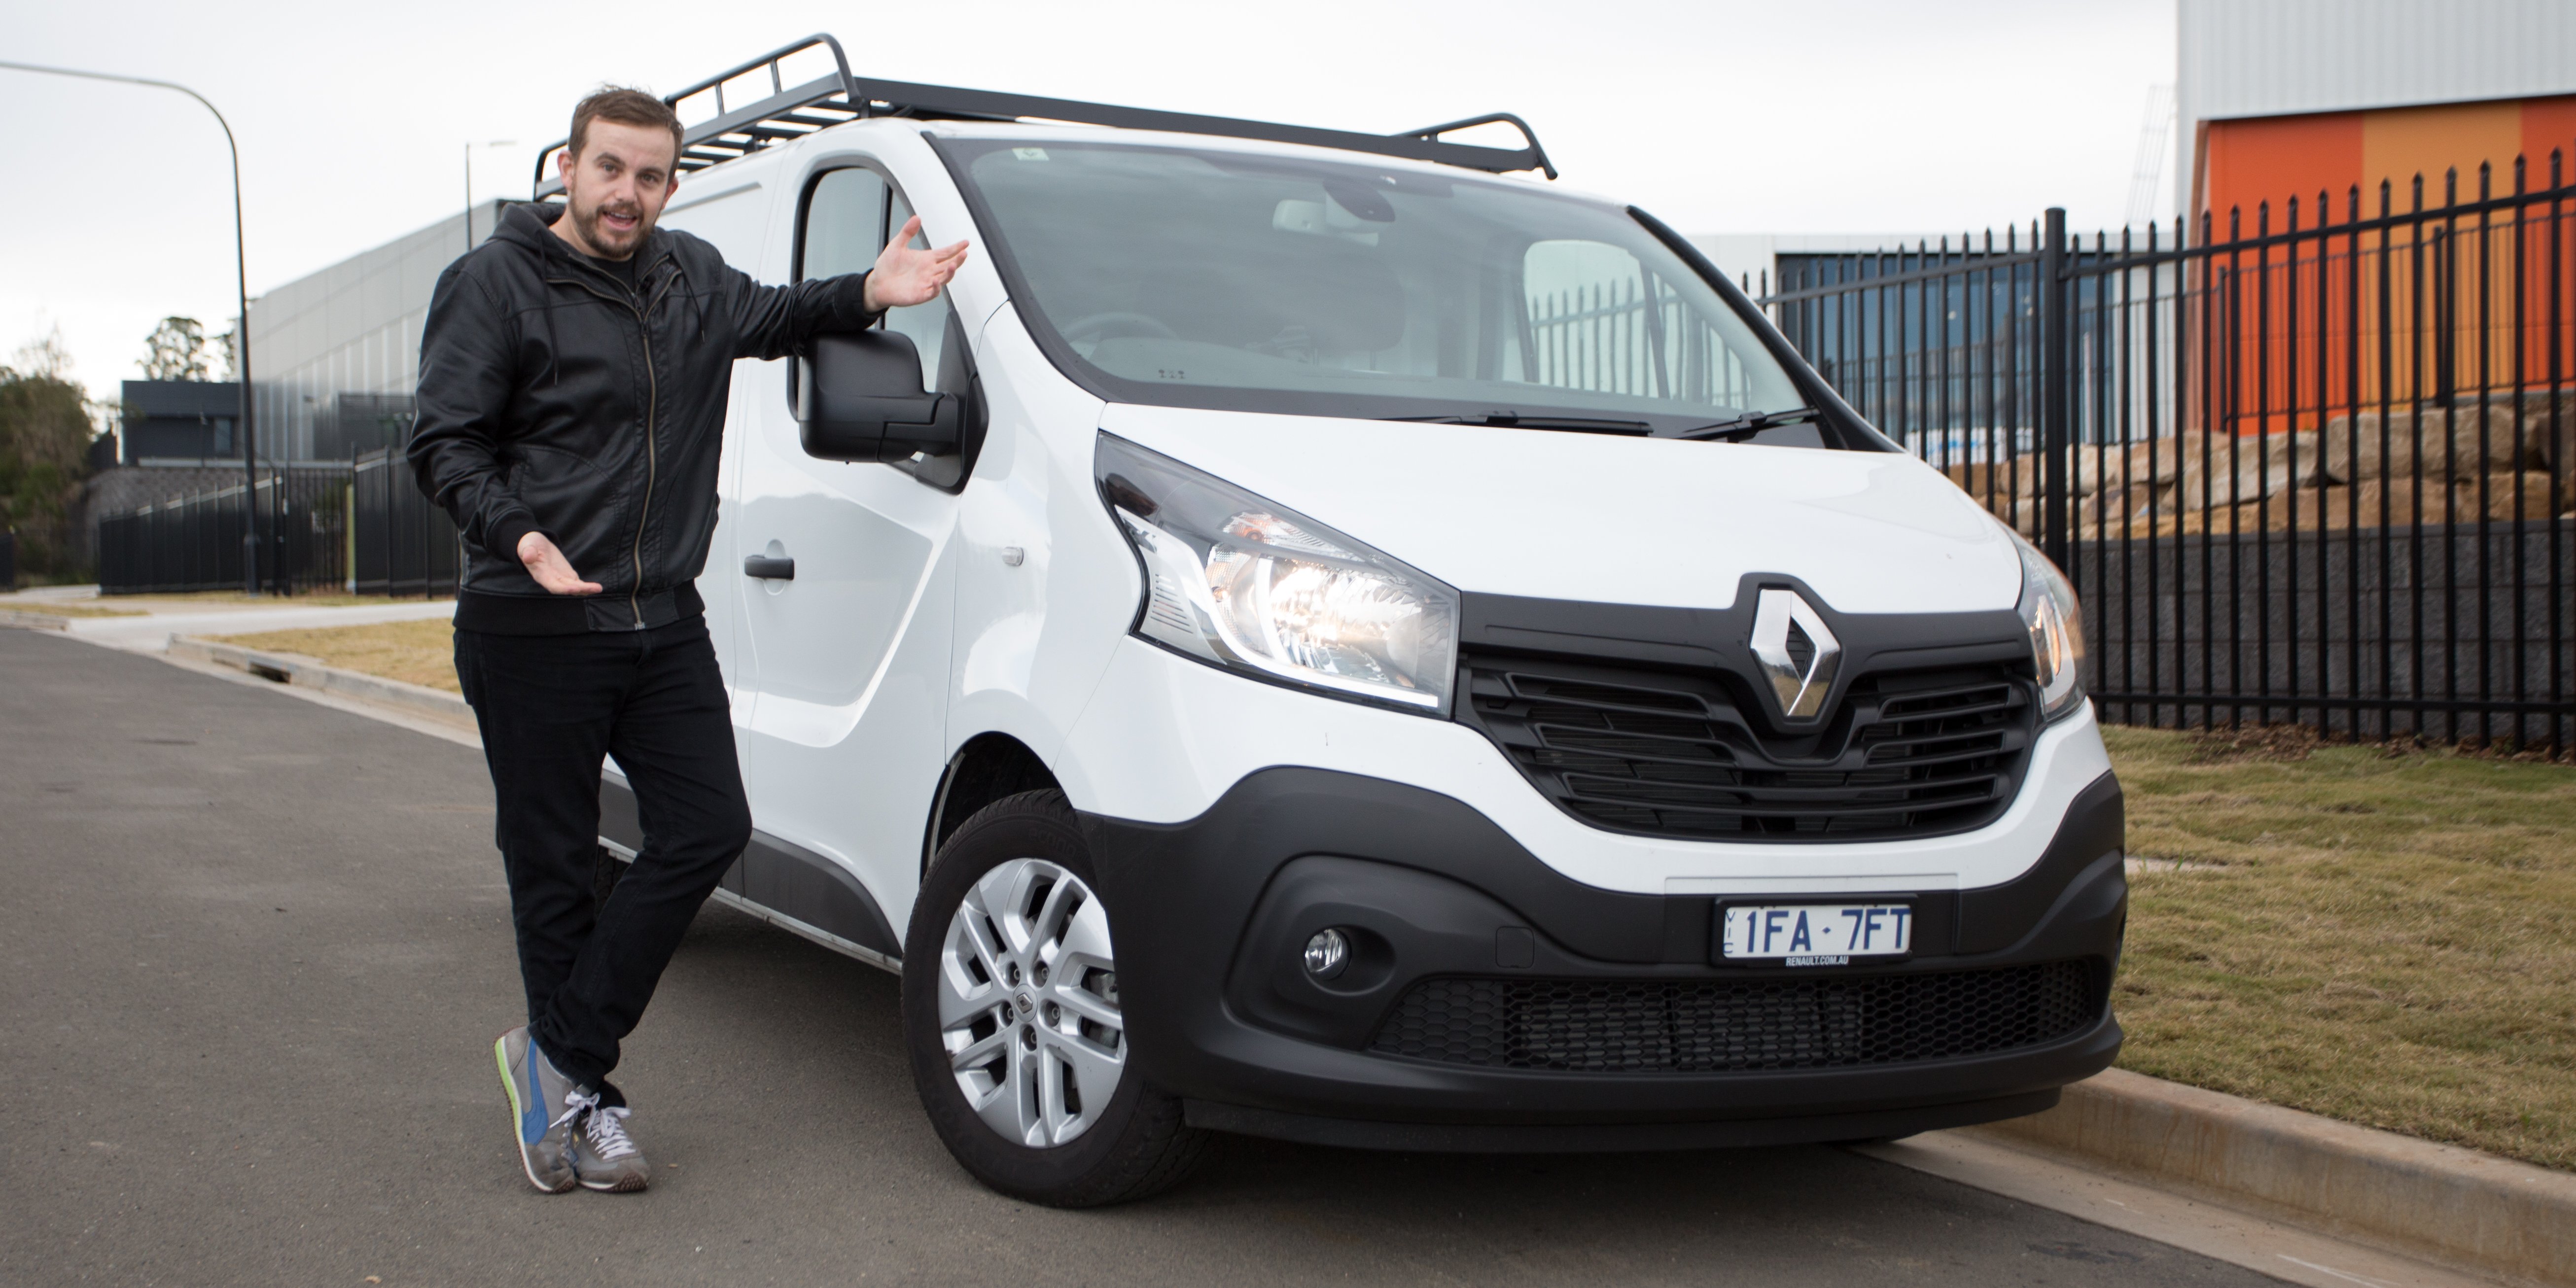 2016 renault trafic review long term report four farewell caradvice. Black Bedroom Furniture Sets. Home Design Ideas